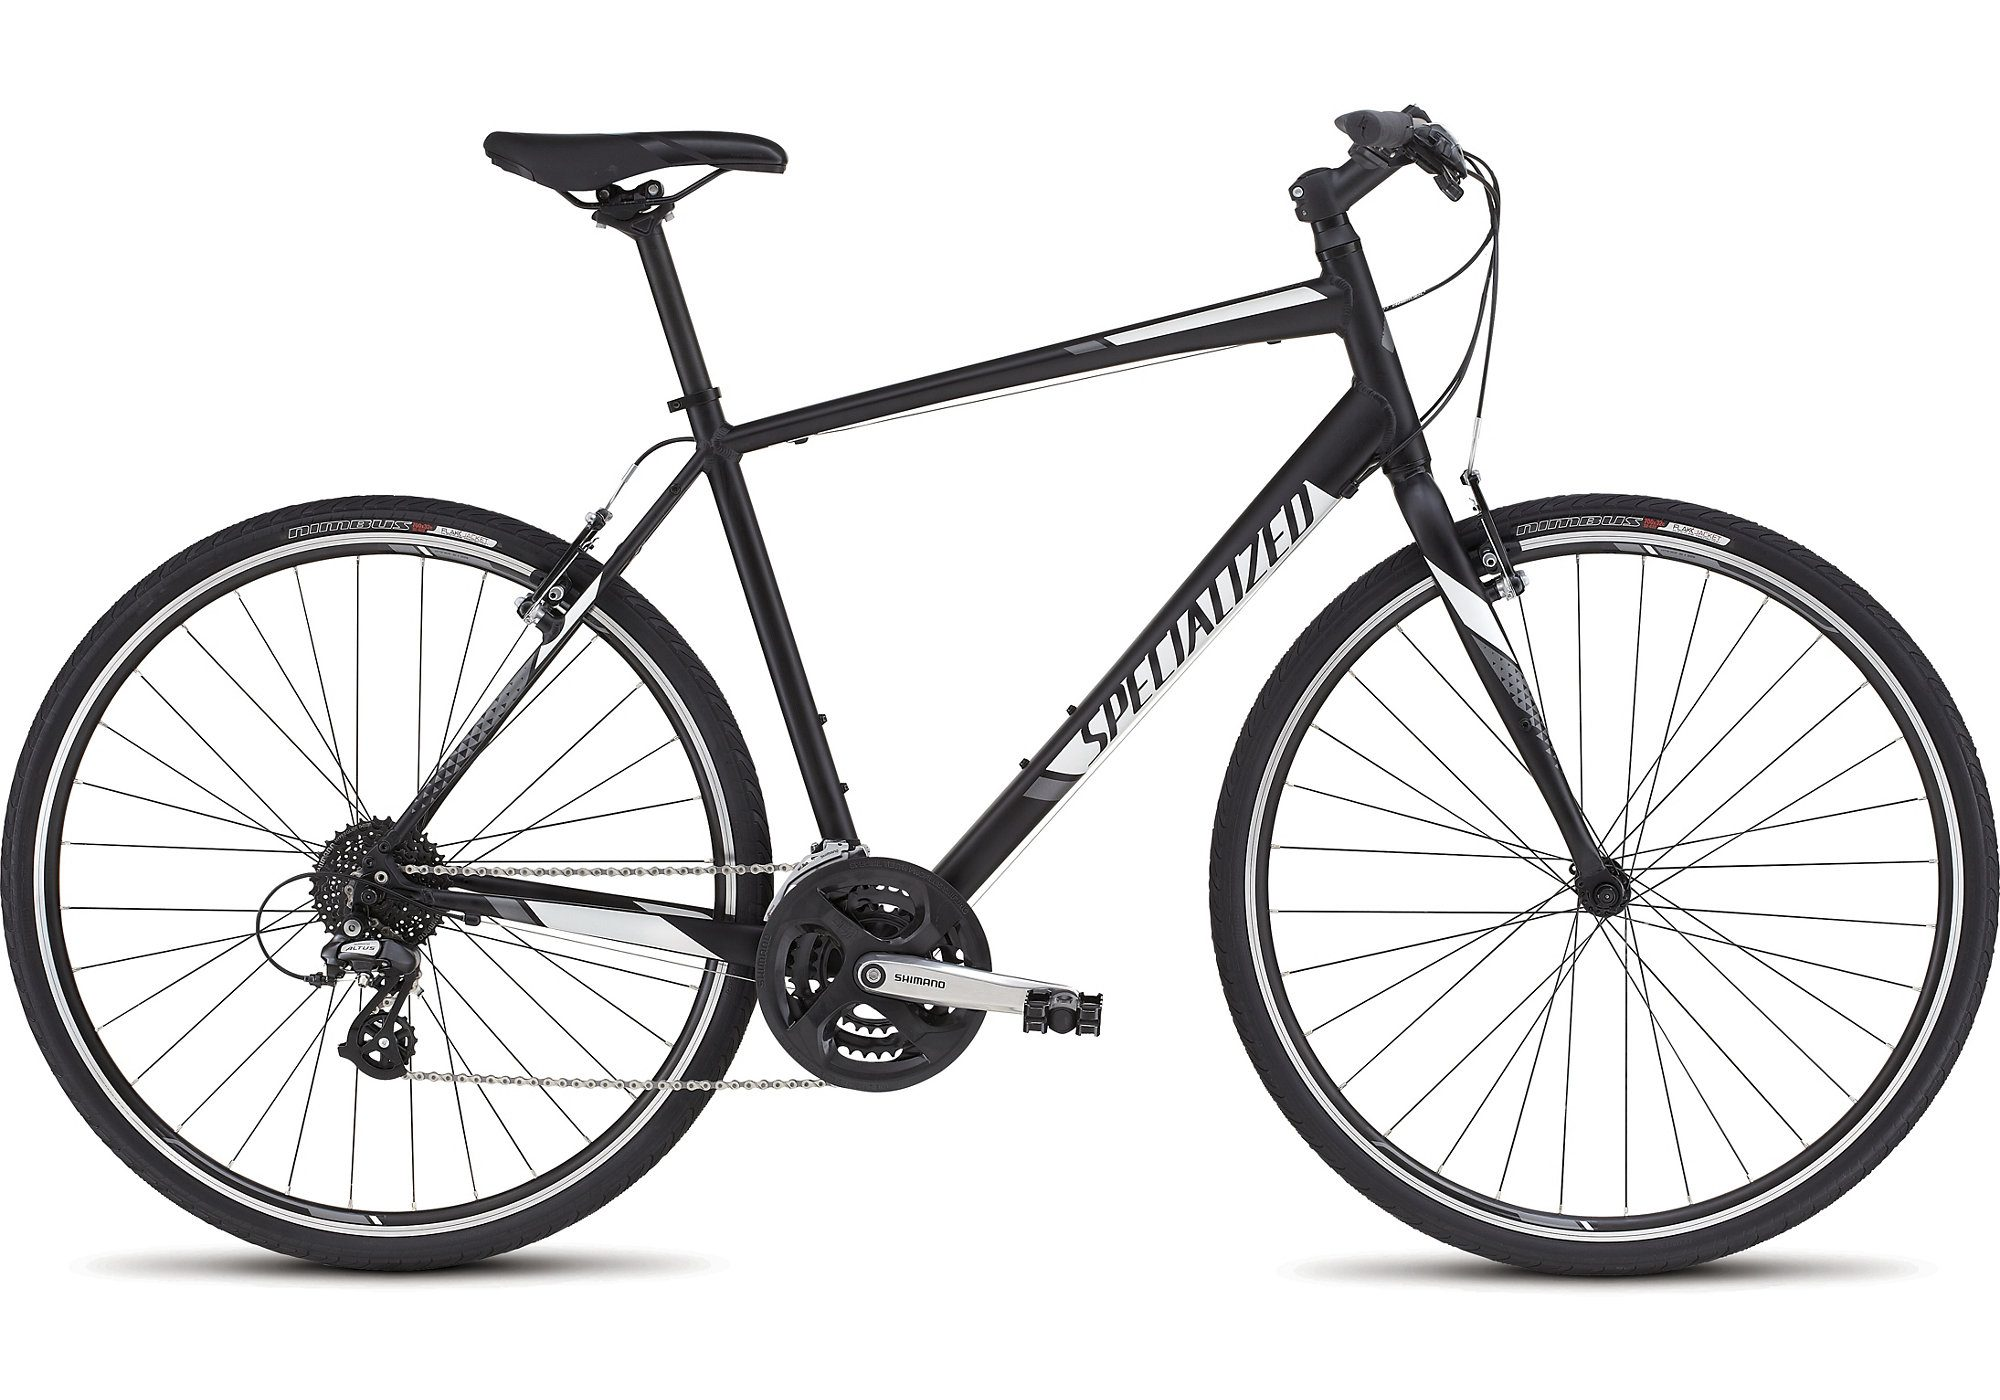 2. Specialized Sirrus, Fitness, 700C